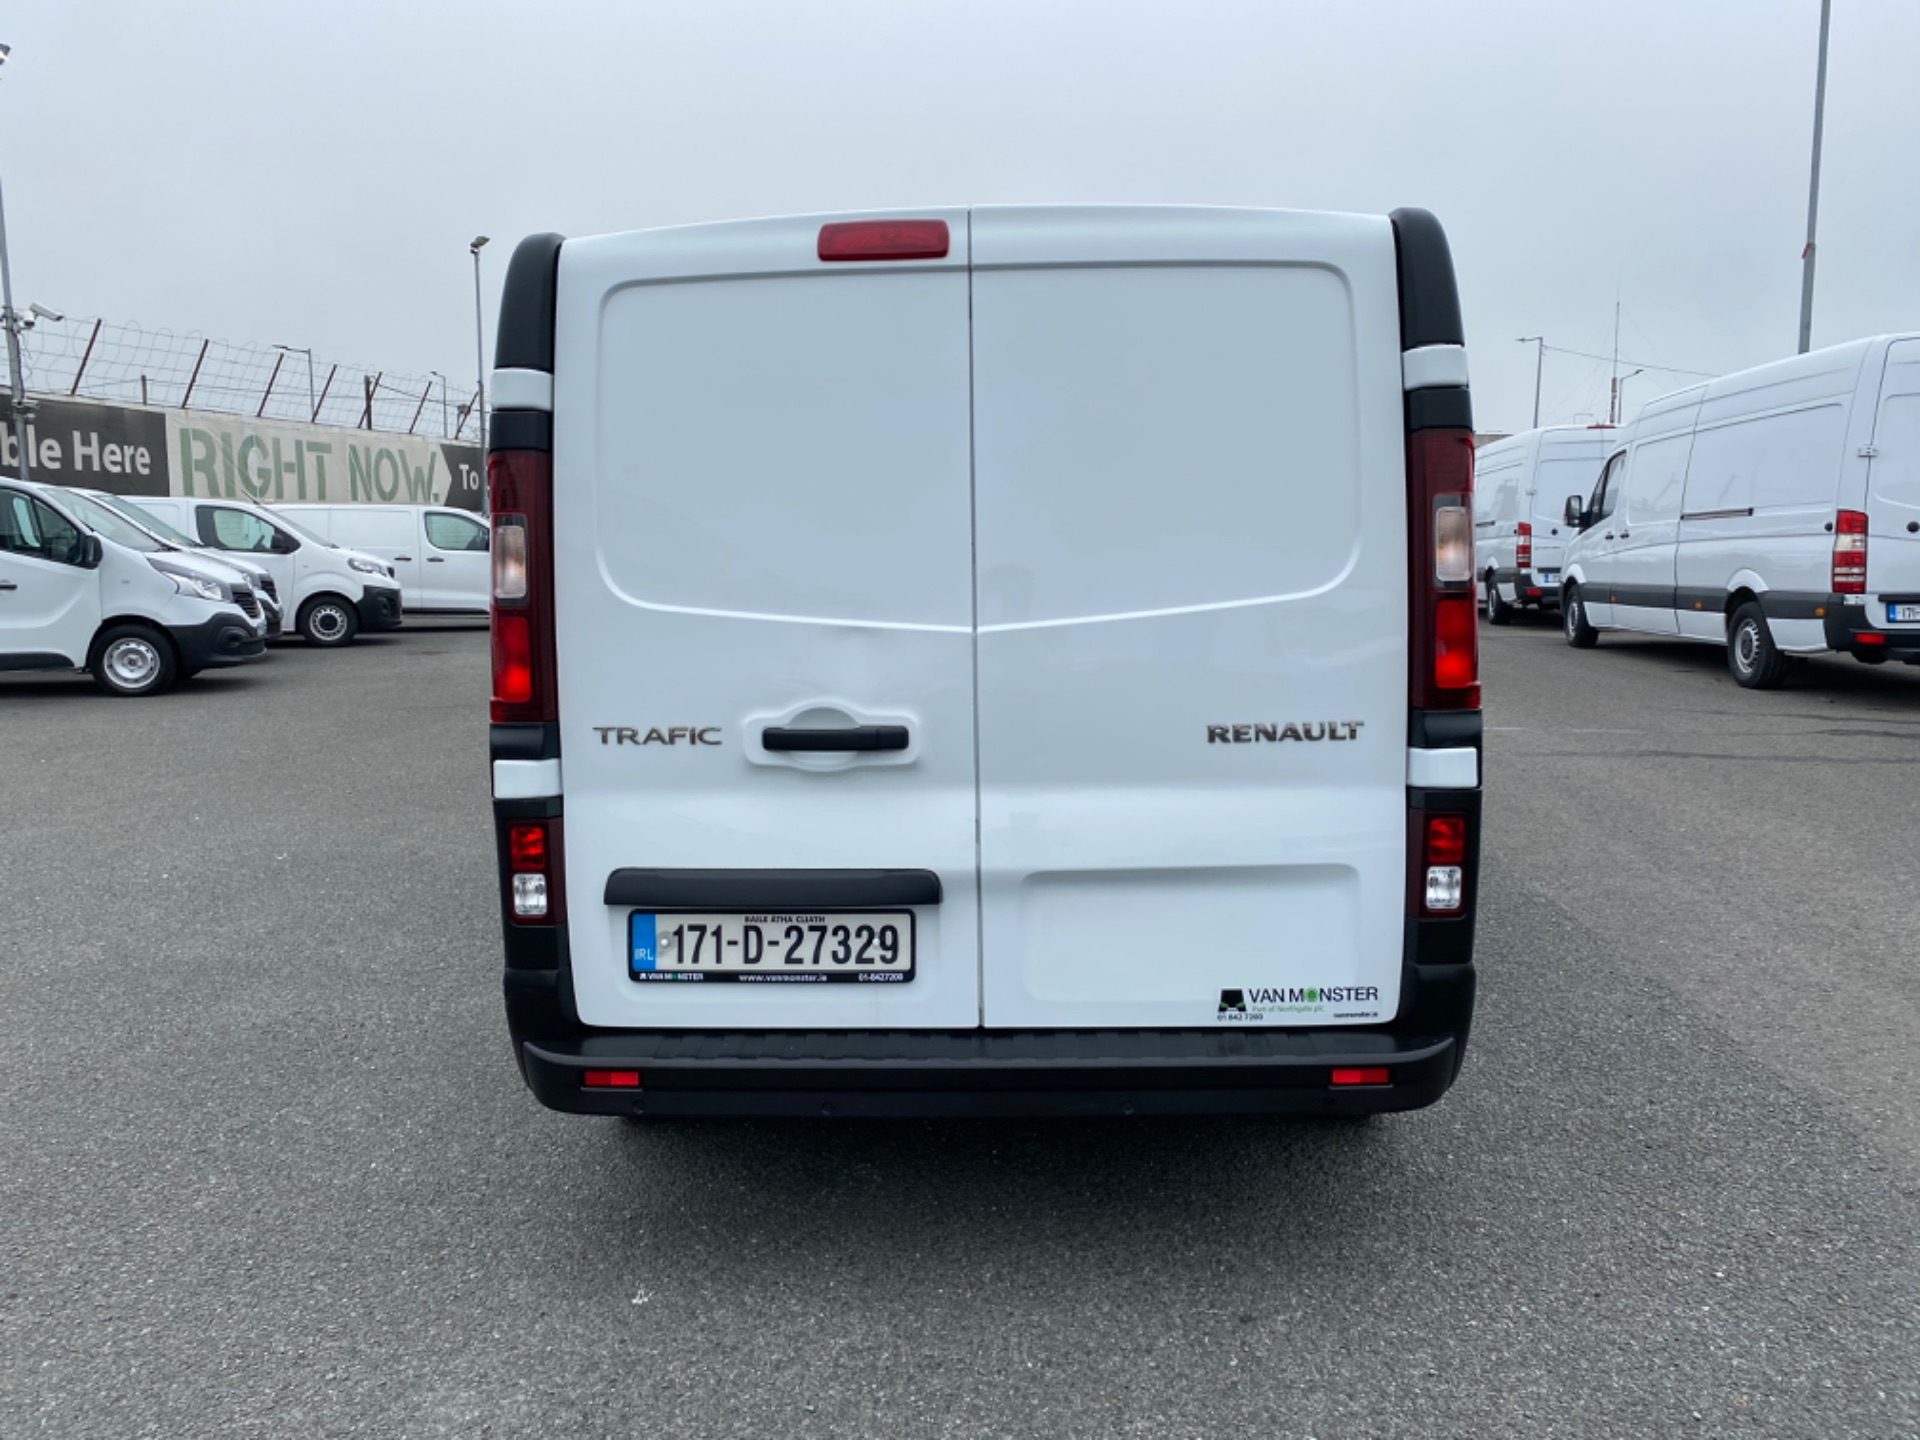 2017 Renault Trafic LL29 DCI 120 Business 3DR (171D27329) Image 7